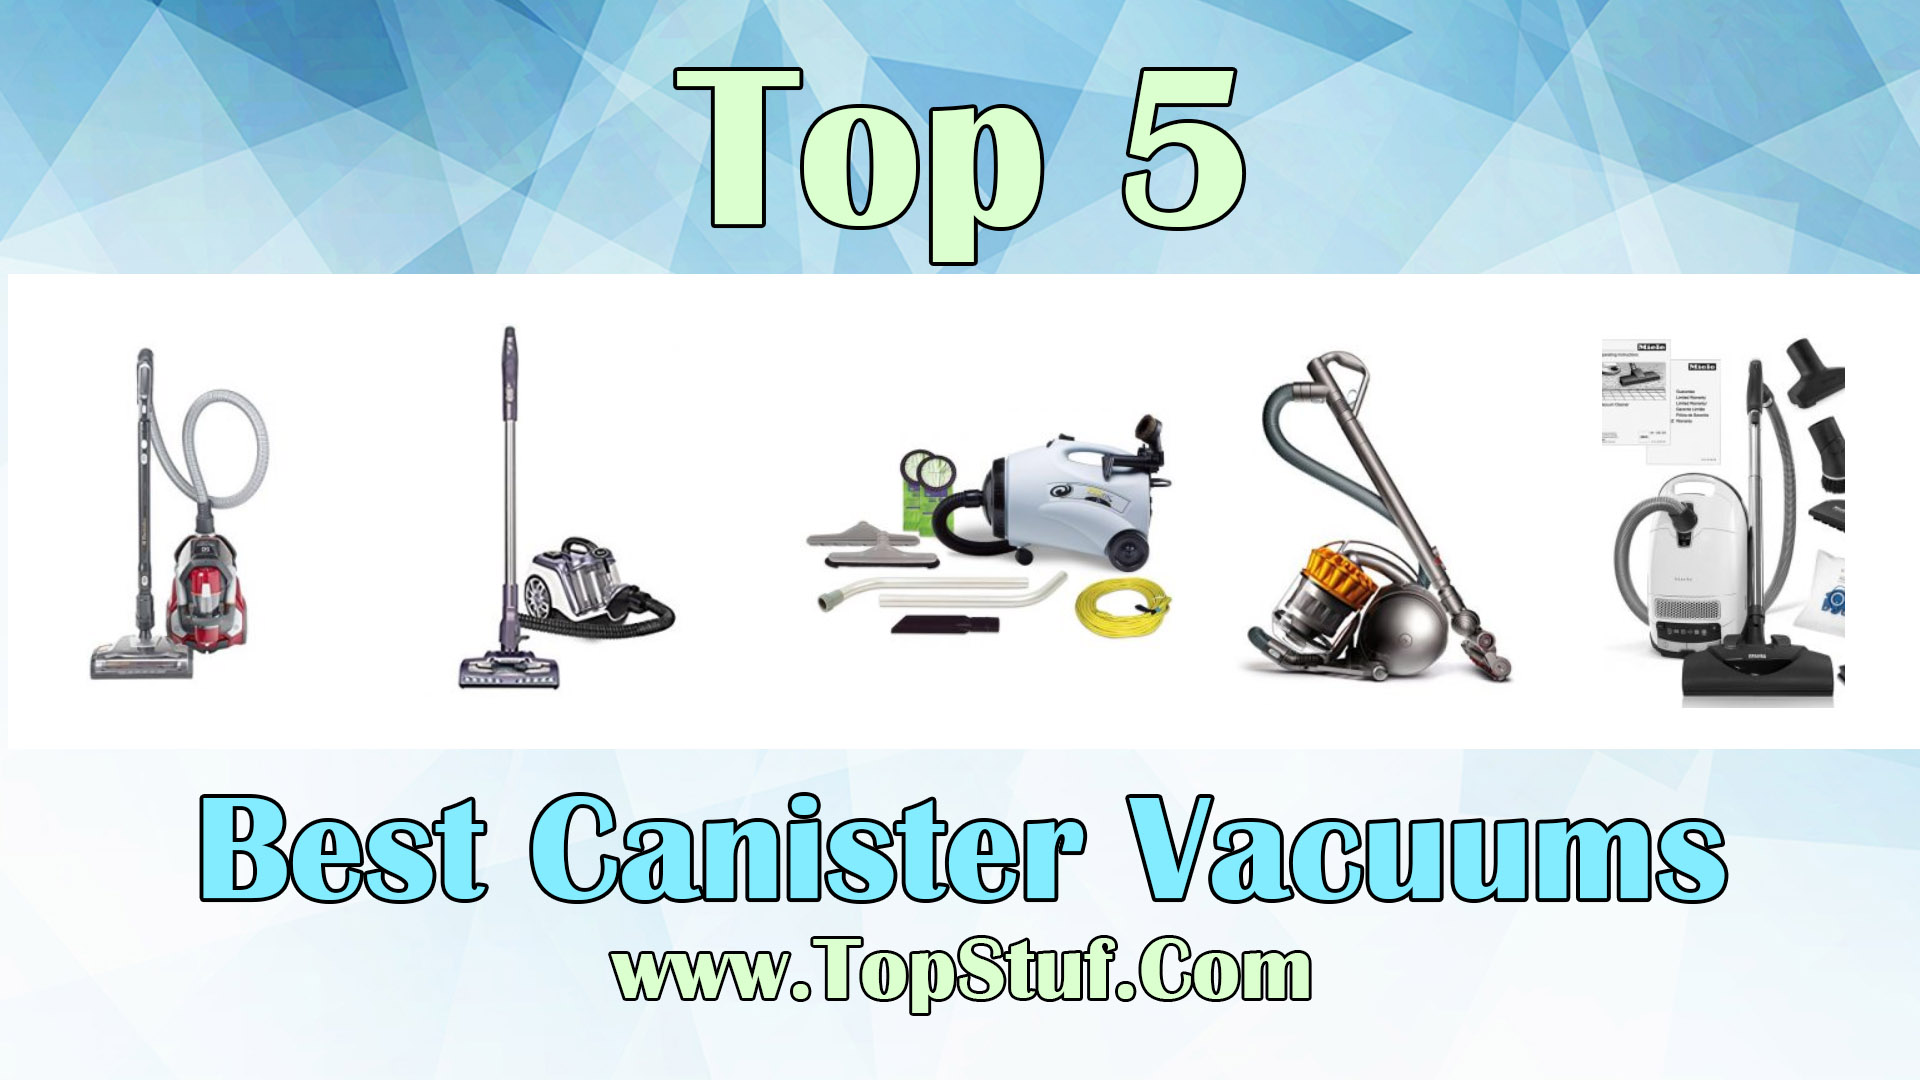 Best Canister Vacuums